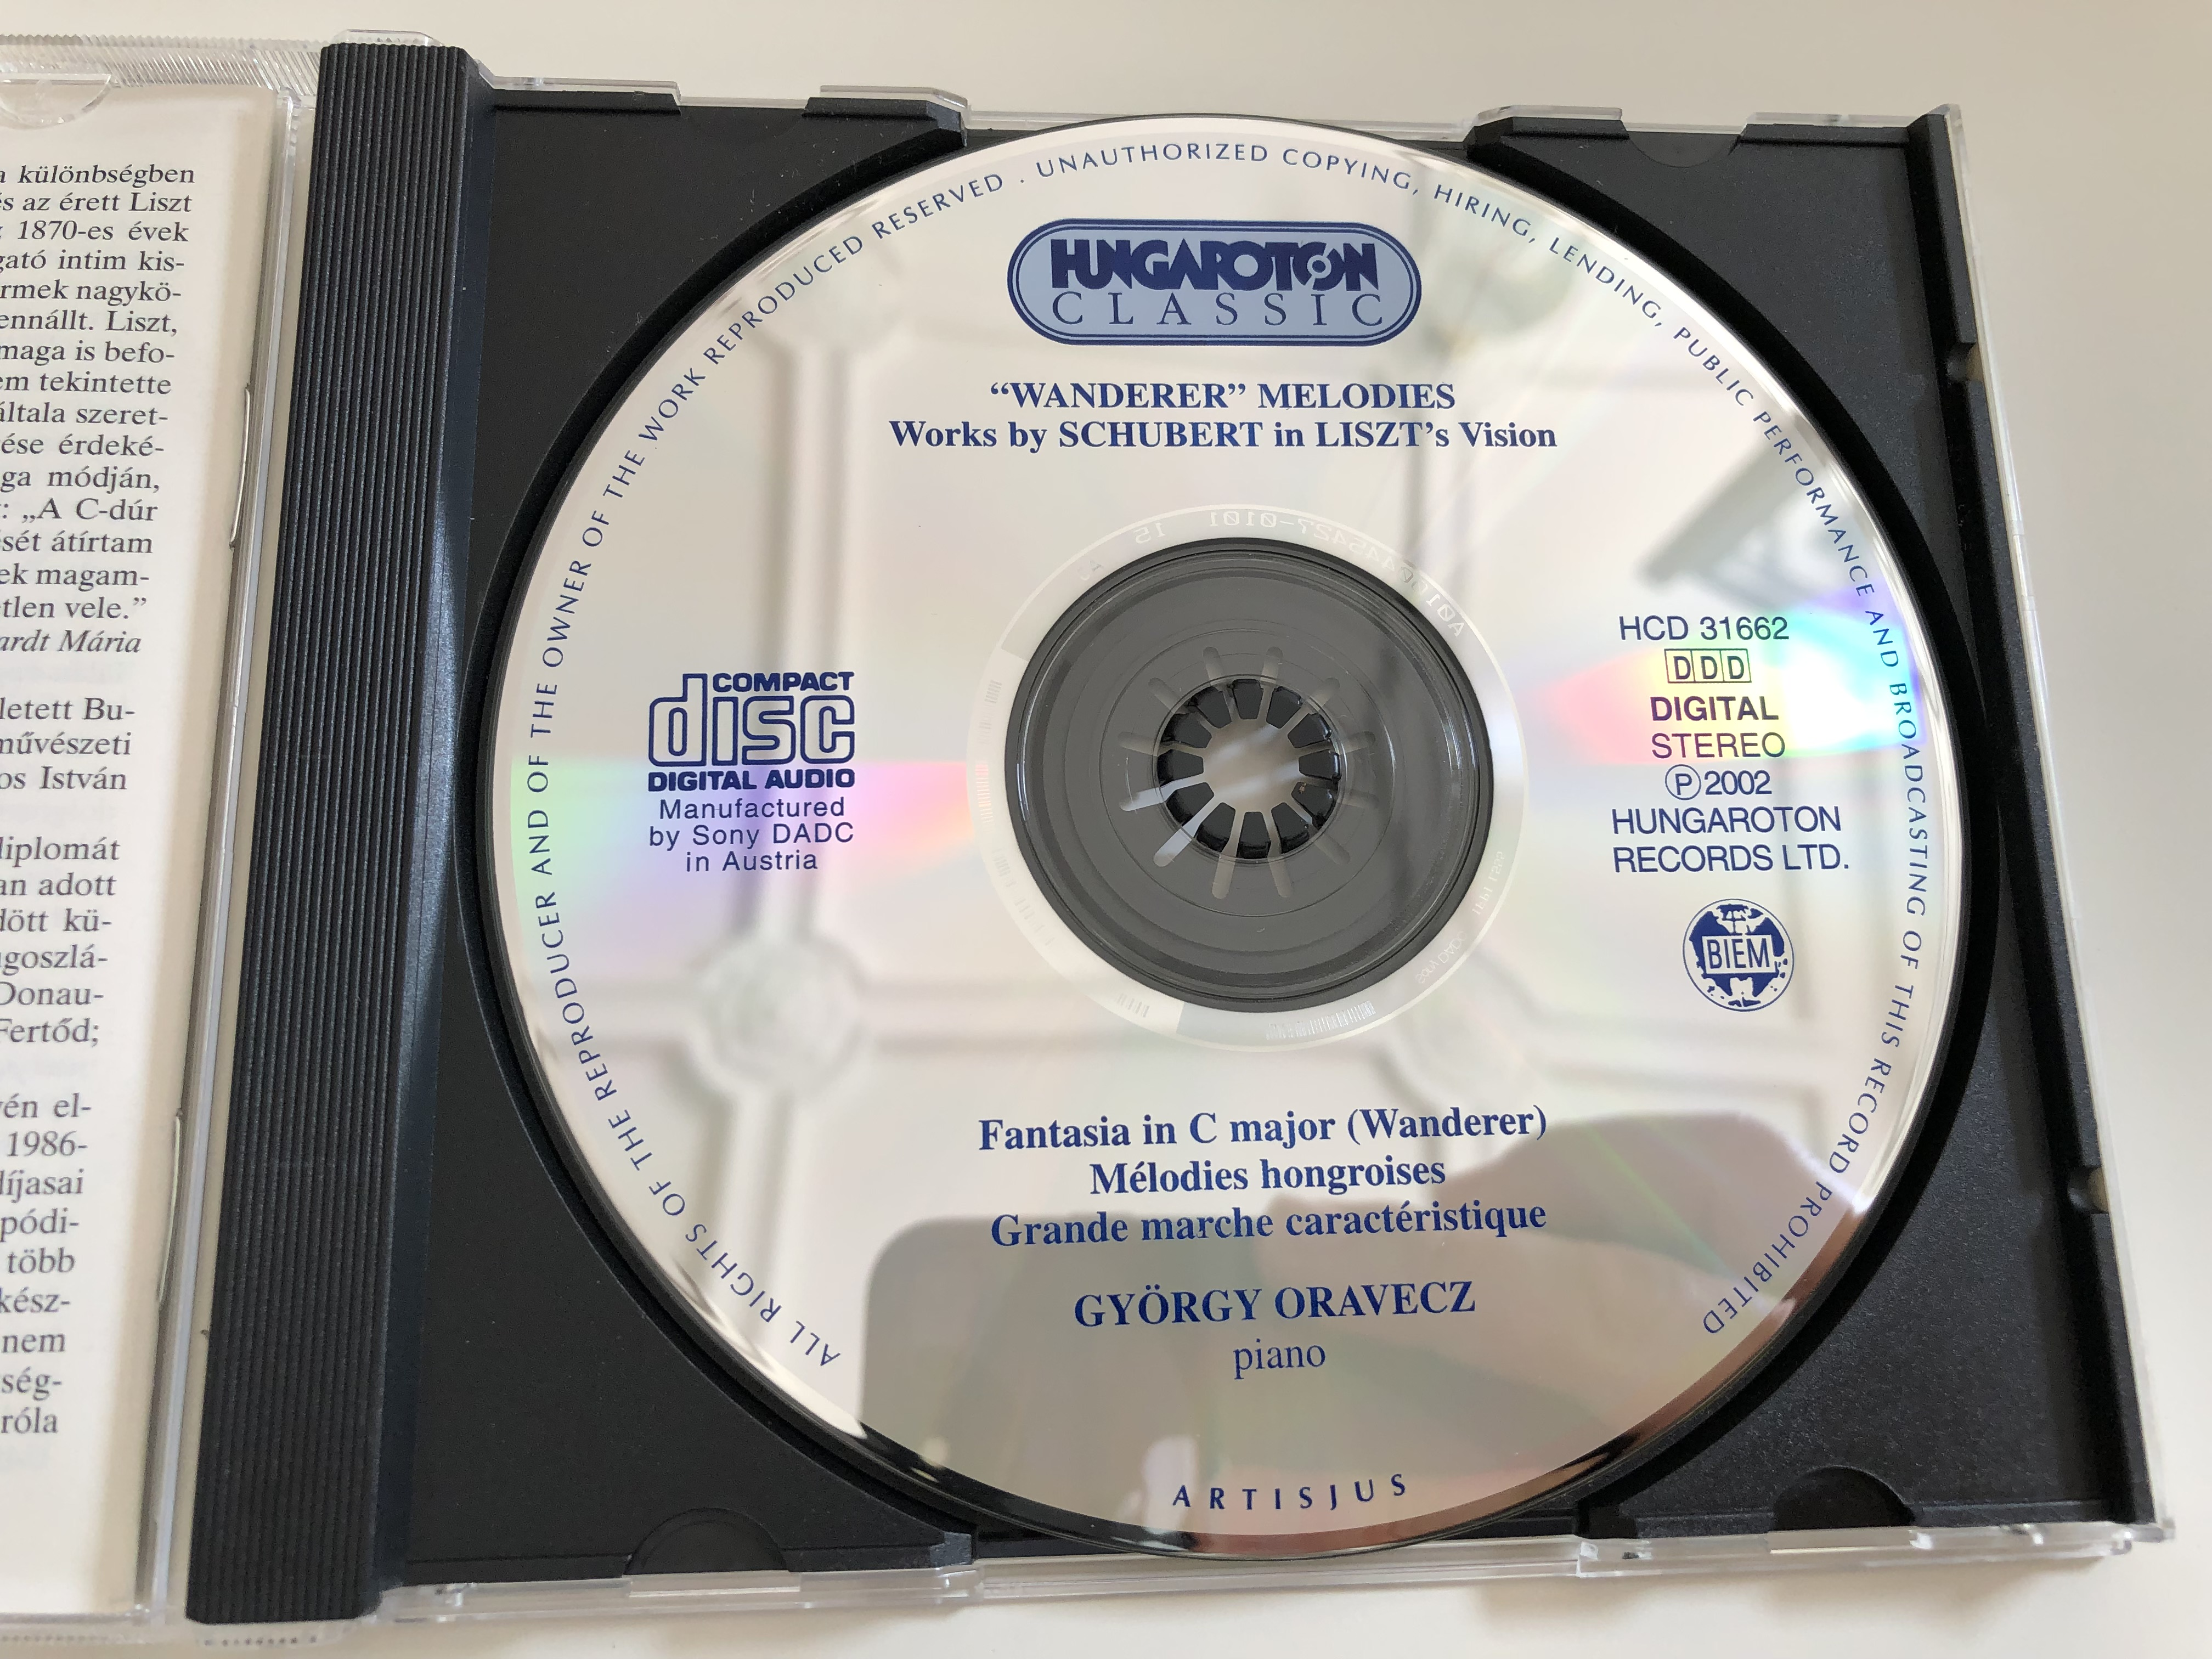 wanderer-melodies-works-by-schubert-in-liszt-s-vision-gy-rgy-oravecz-piano-fantasia-in-c-major-m-lodies-hongroises-grande-marche-caract-ristique-hungaroton-classic-audio-cd-2003-hcd-31662-5-.jpg